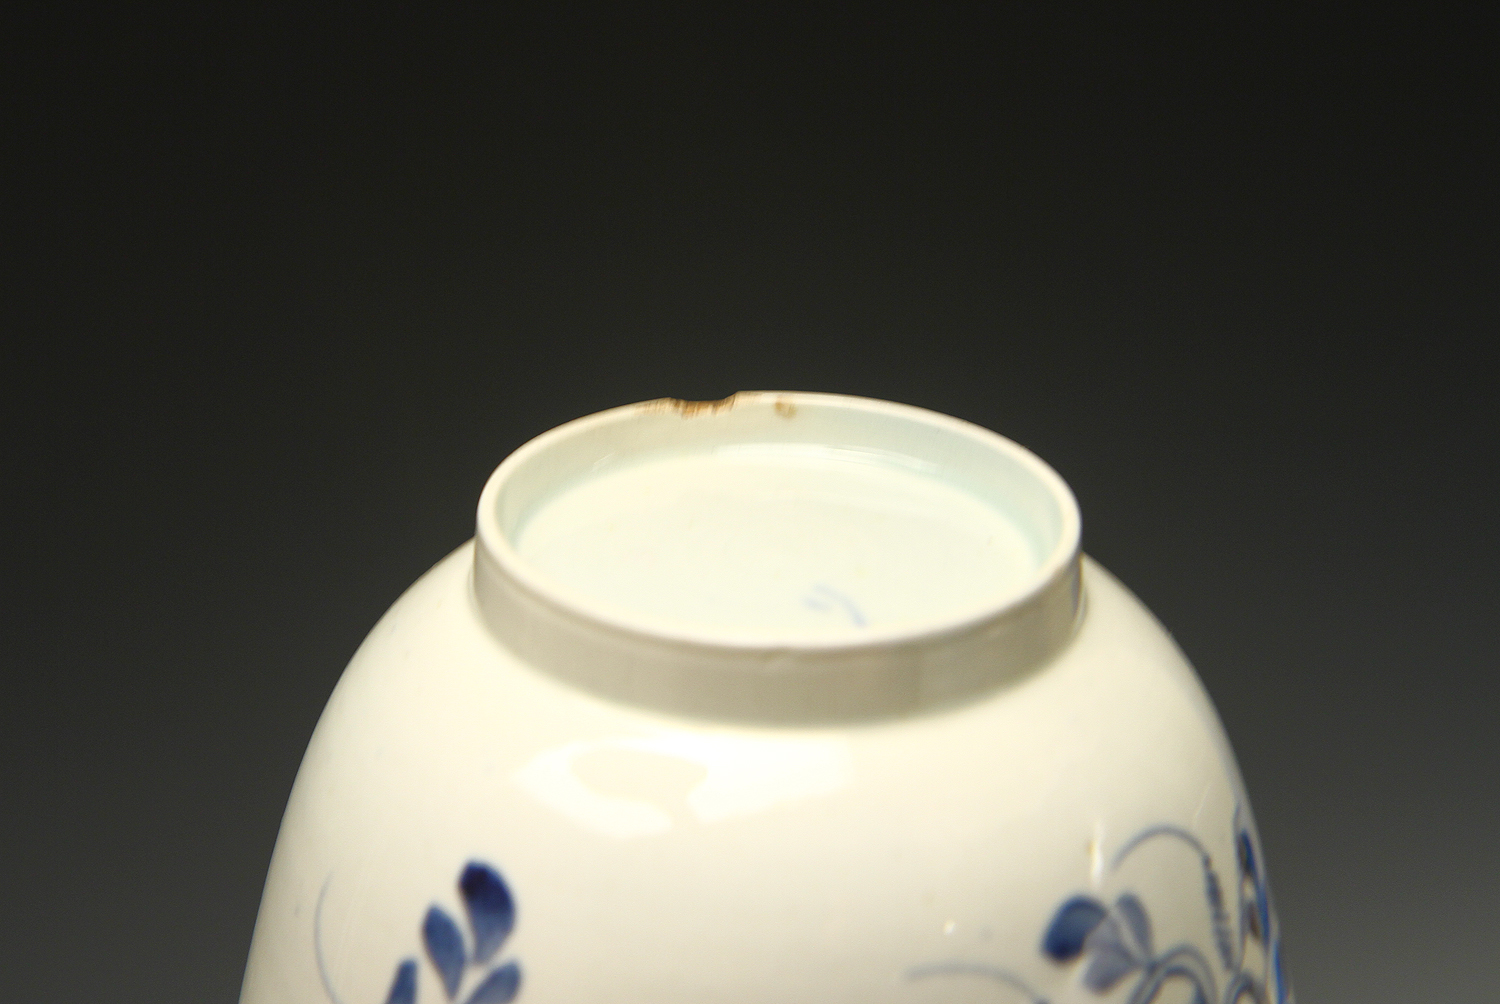 1024 - A pearlware teabowl and saucer c 1780